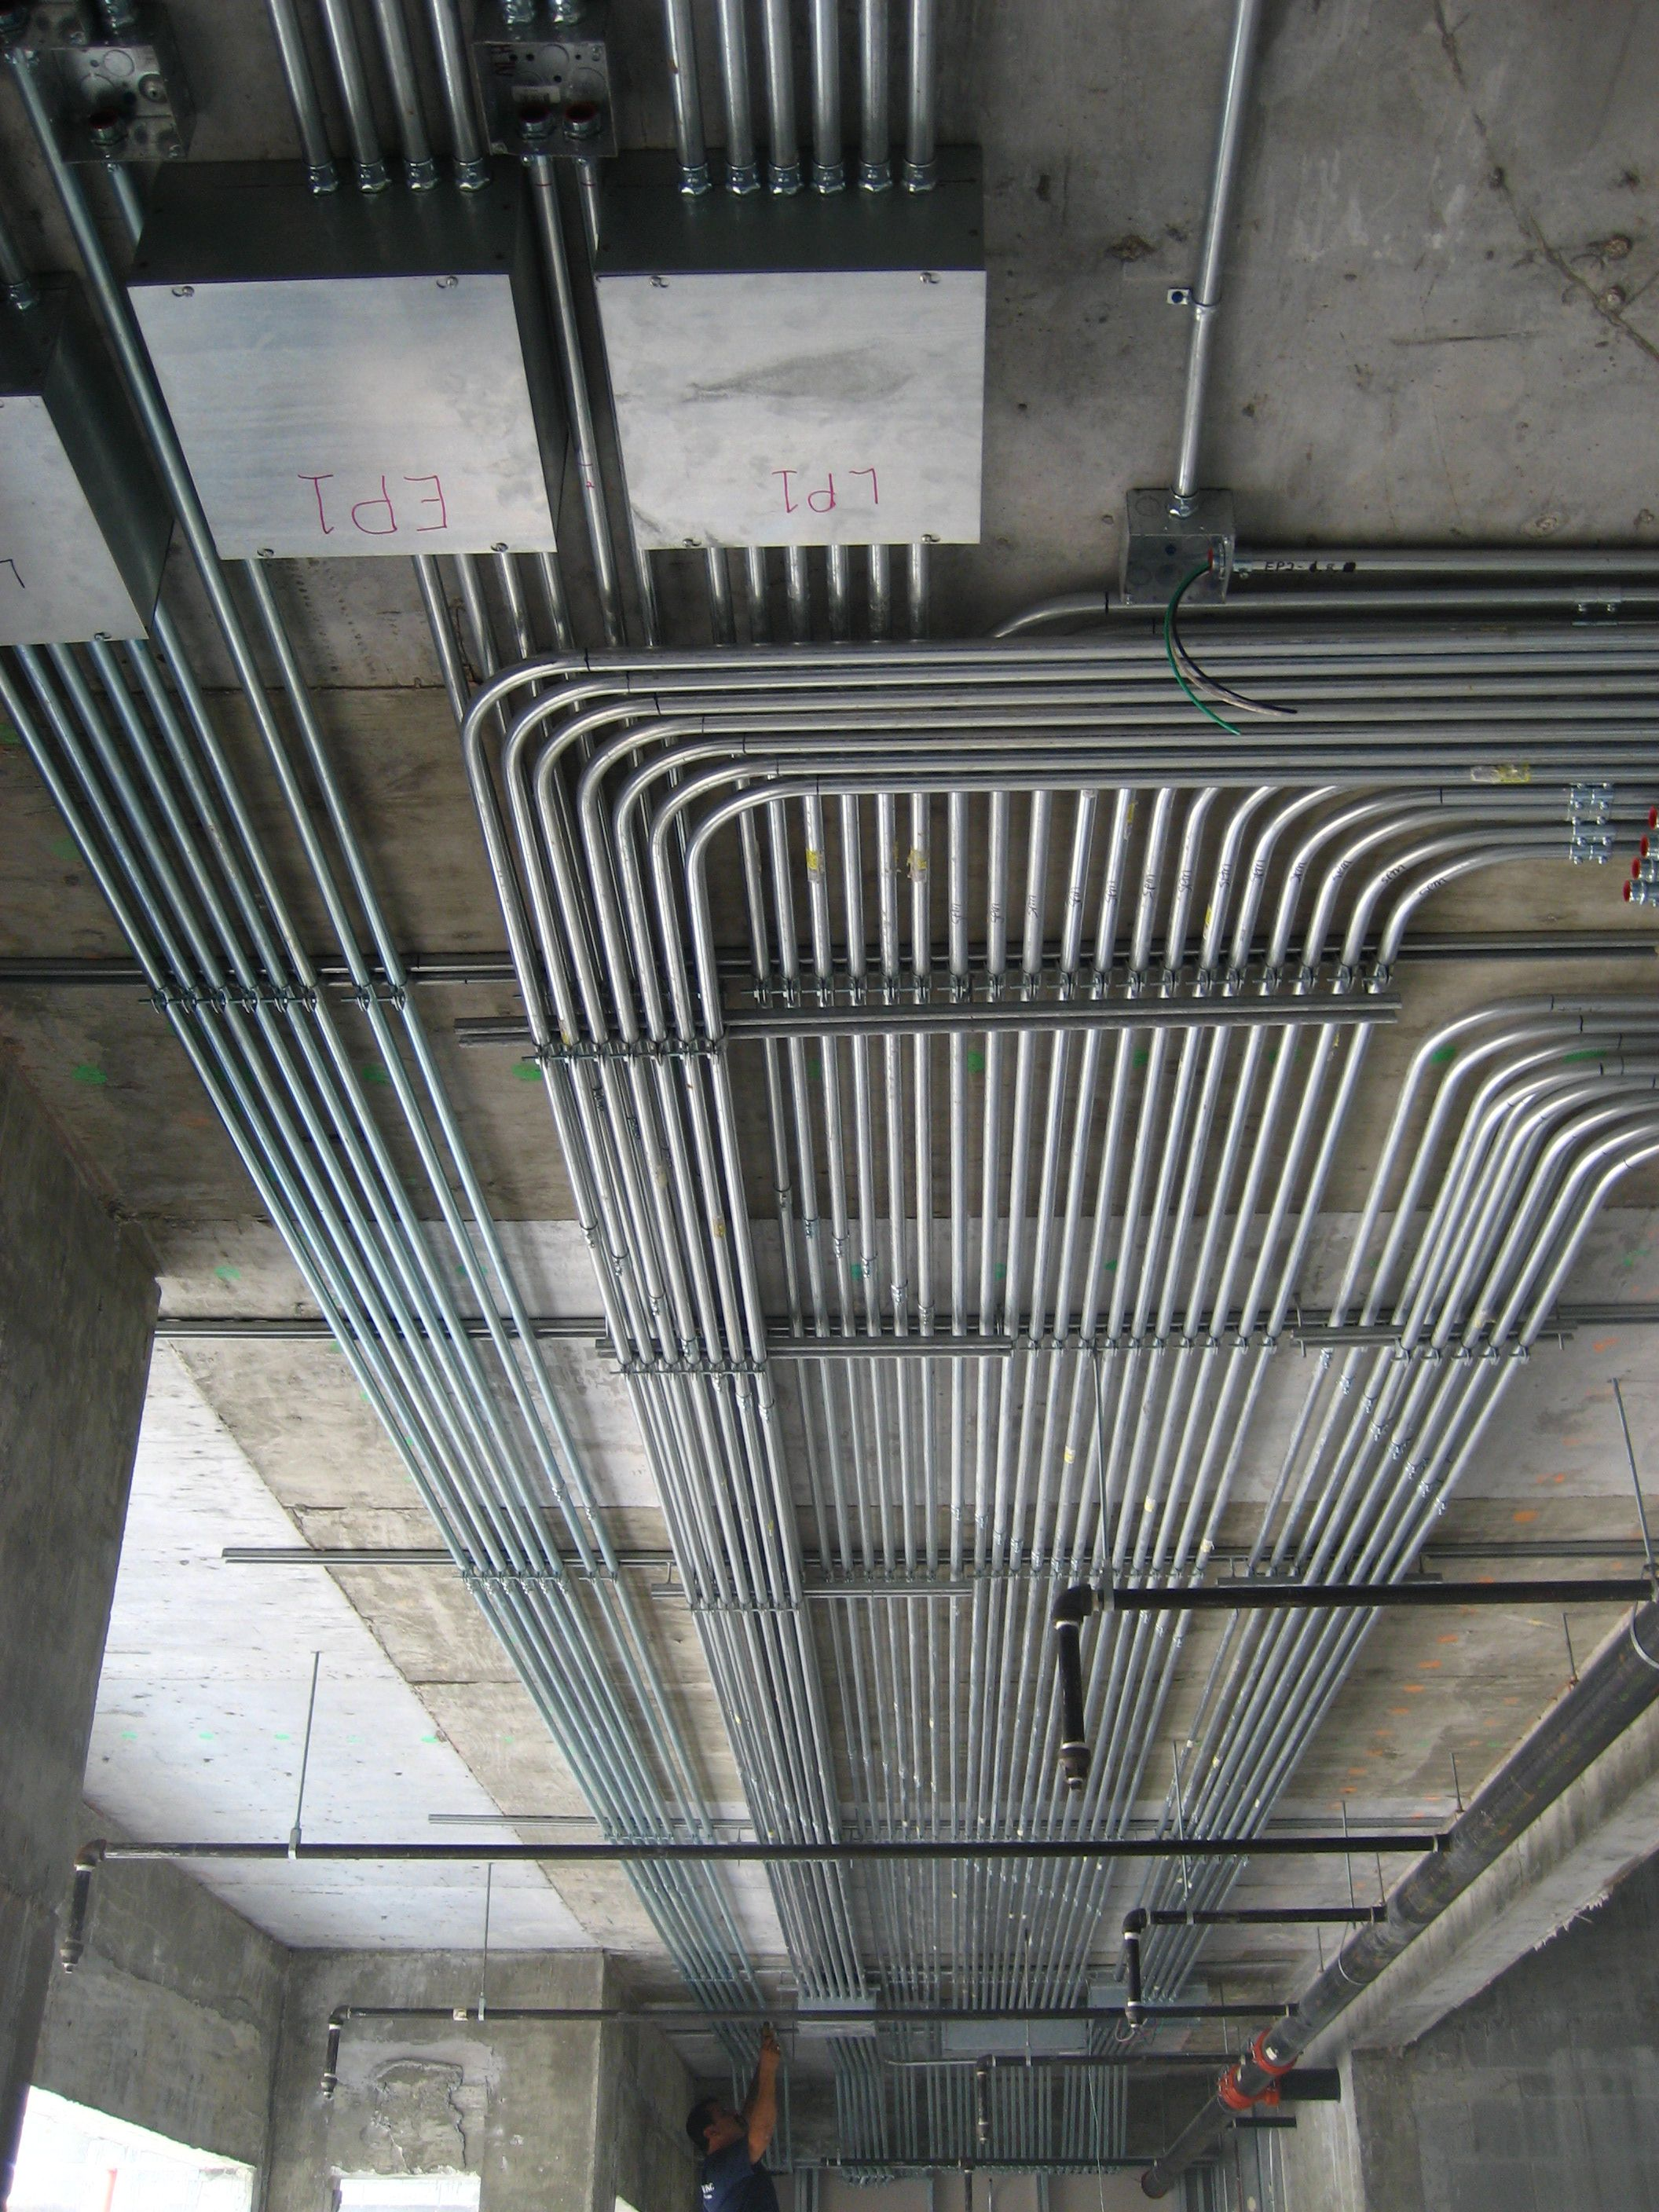 conduit installation - Google Search | Electrical wiring ... on lighting wiring, emt wiring, junction box wiring, aluminum wiring, panel wiring, control wiring, tube wiring, ballasts wiring, circuit wiring, well wiring, transformers wiring, power wiring, receptacles wiring, hvac wiring, cable wiring, thermostats wiring, electrical wiring, copper wiring, home wiring, switch wiring,